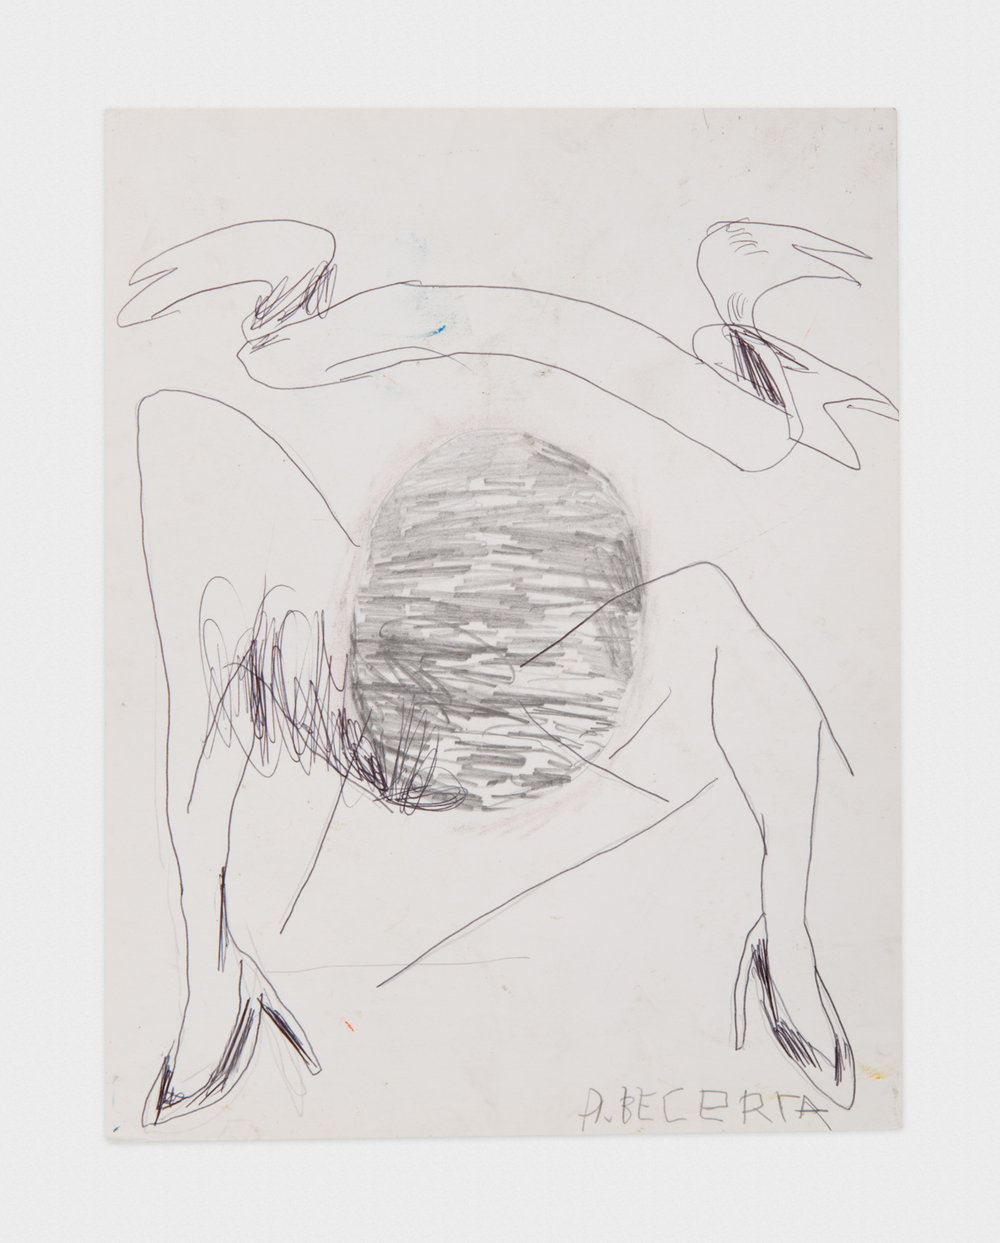 Alex Becerra Untitled 2016 Ballpoint pen and graphite on paper 11 x 8 1/2 in (27.94h x 21.59w cm) AB432